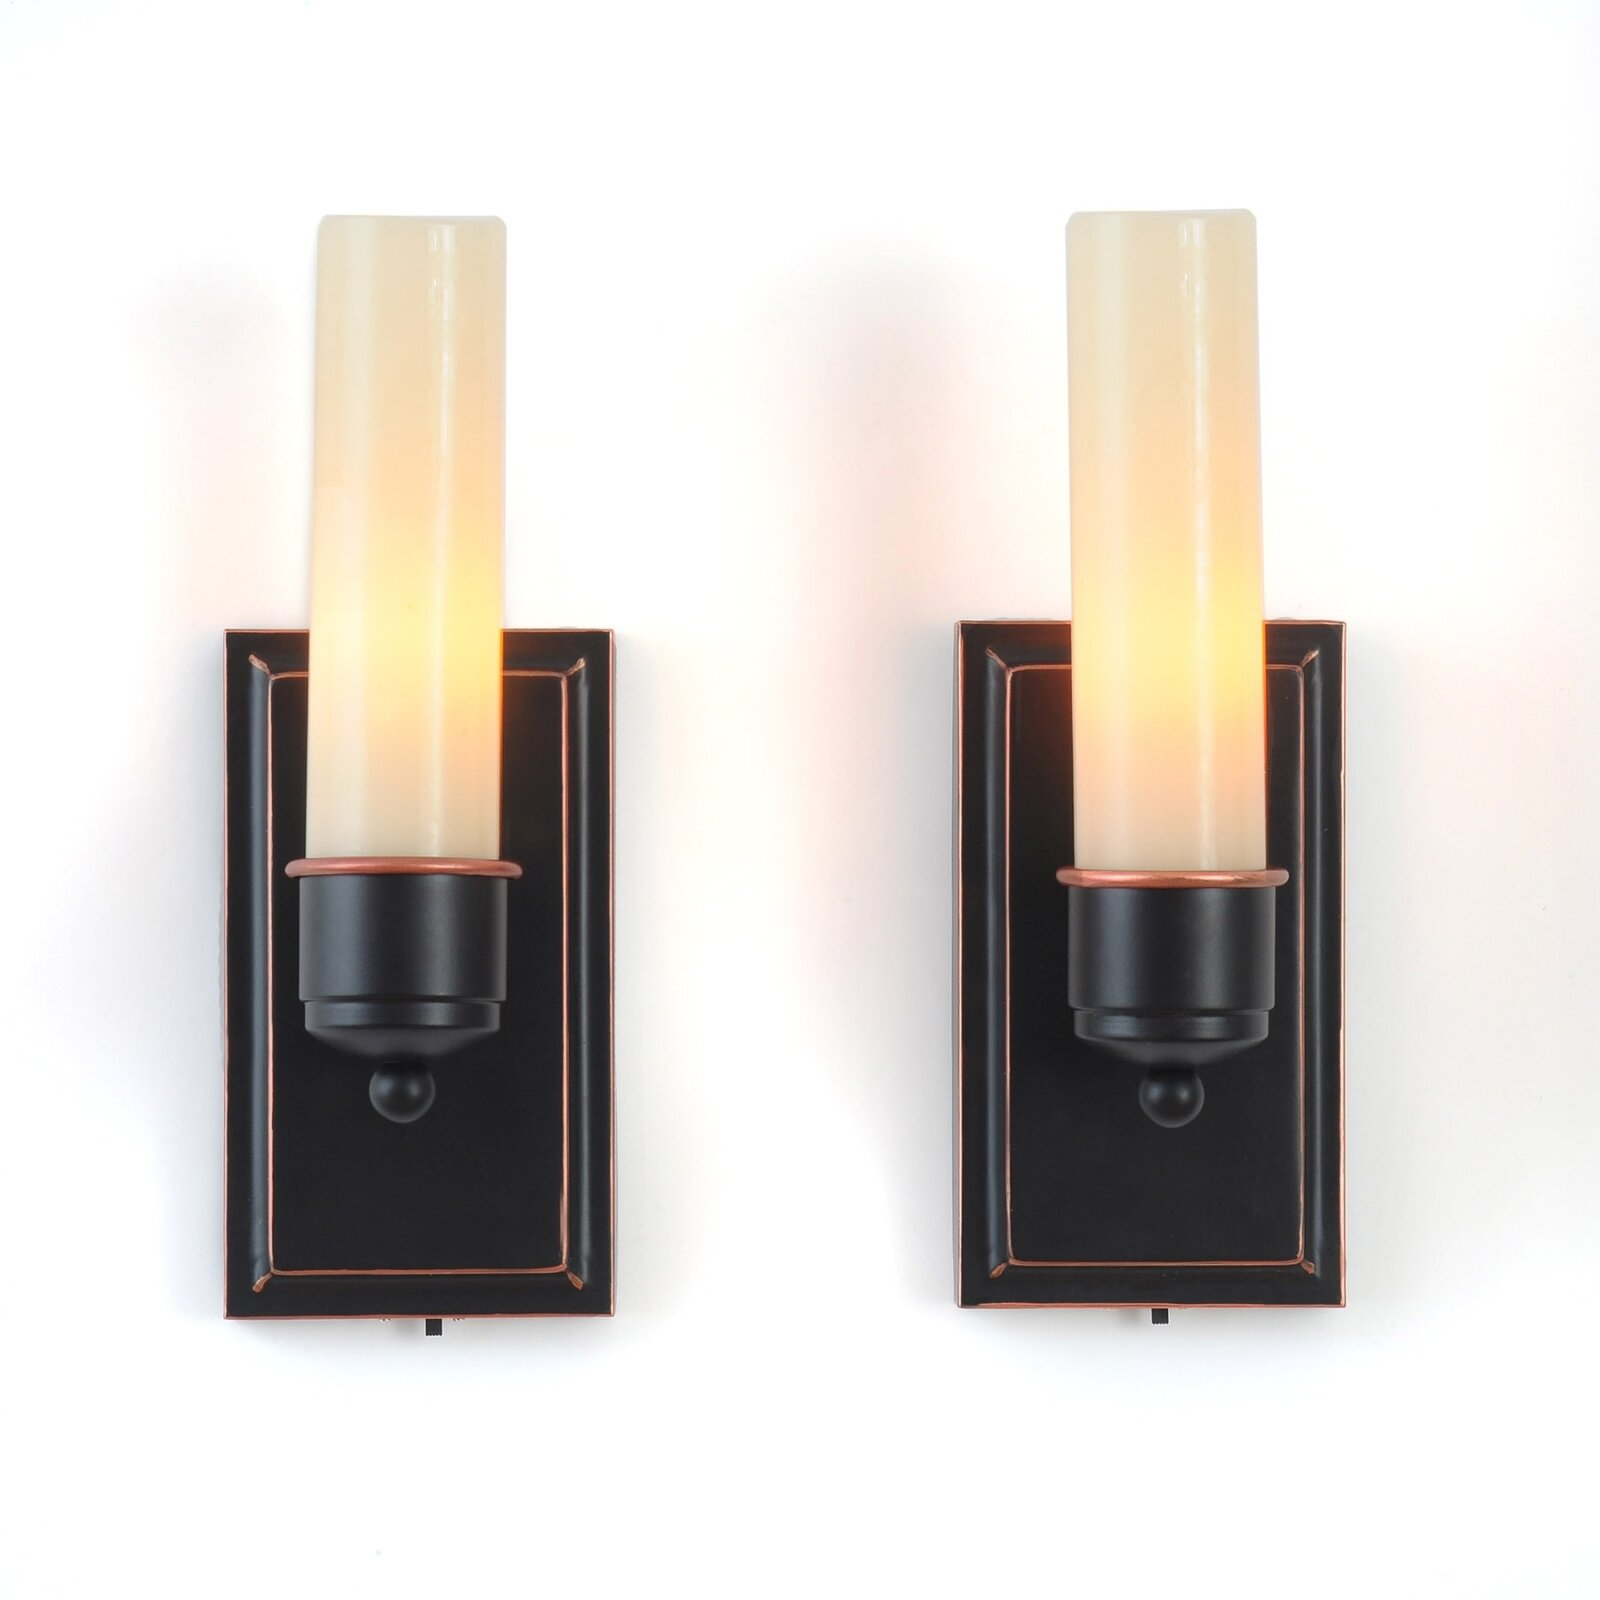 Wall Sconce With Battery Backup : Lion Sports CandleTEK Wall Sconces Flameless Candles Set of 2 eBay